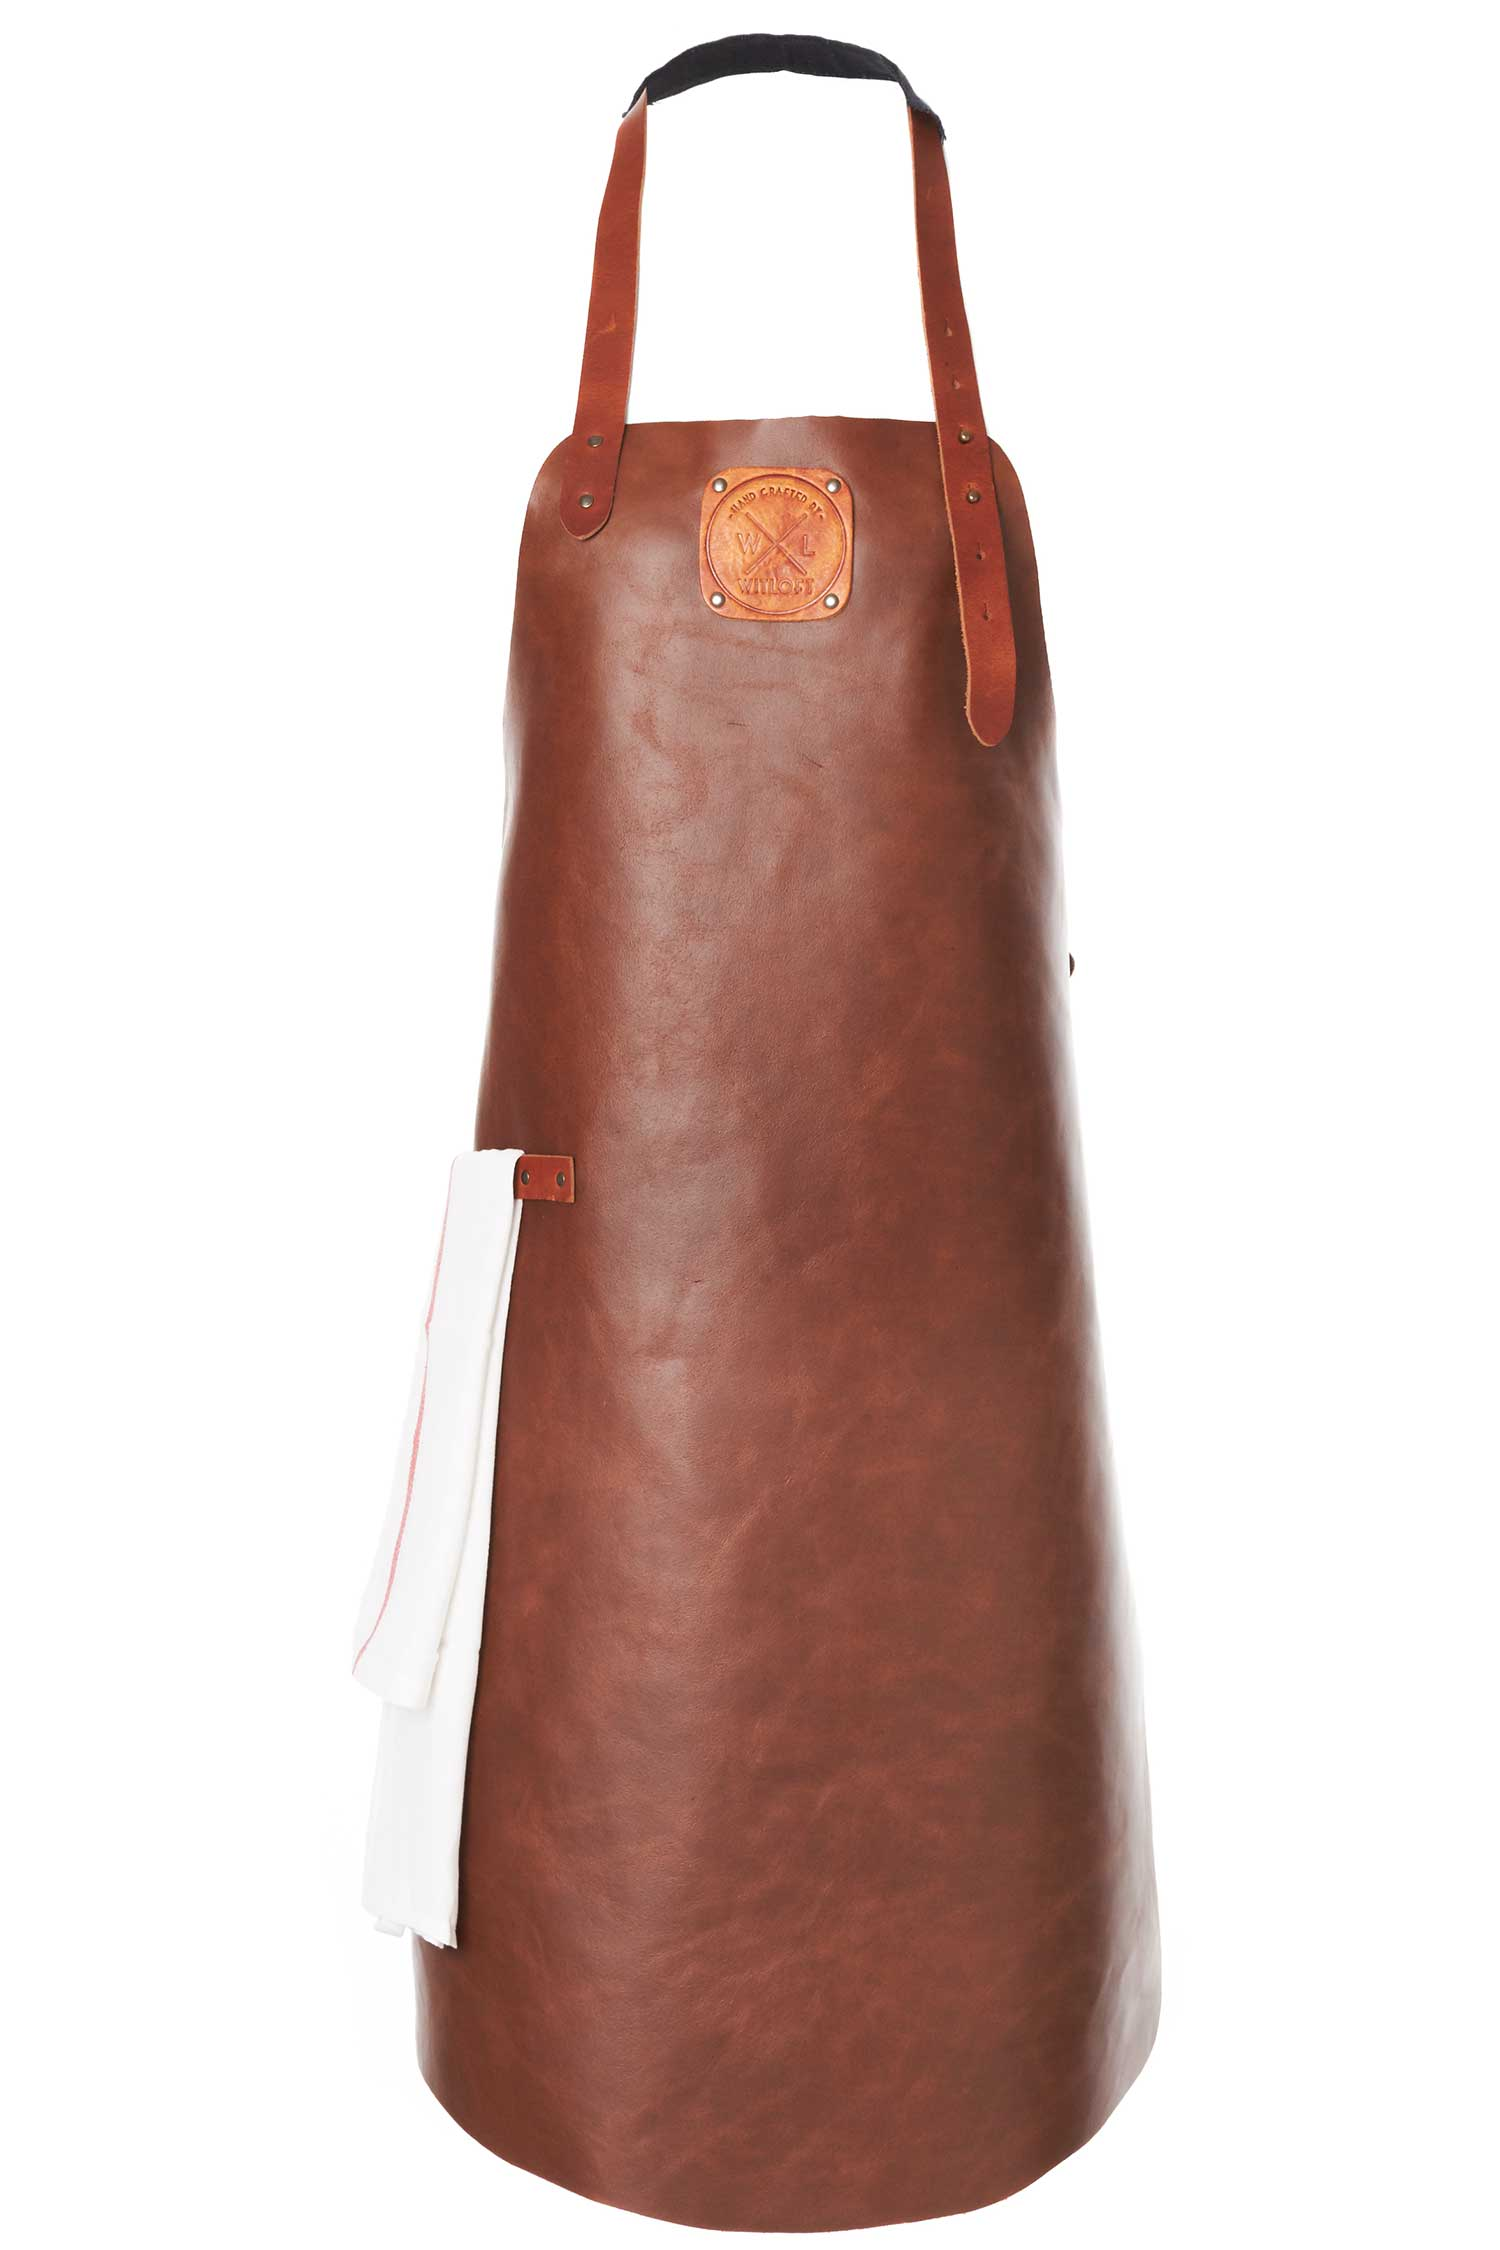 Witloft apron classic collection cognac colored with a cognac strap